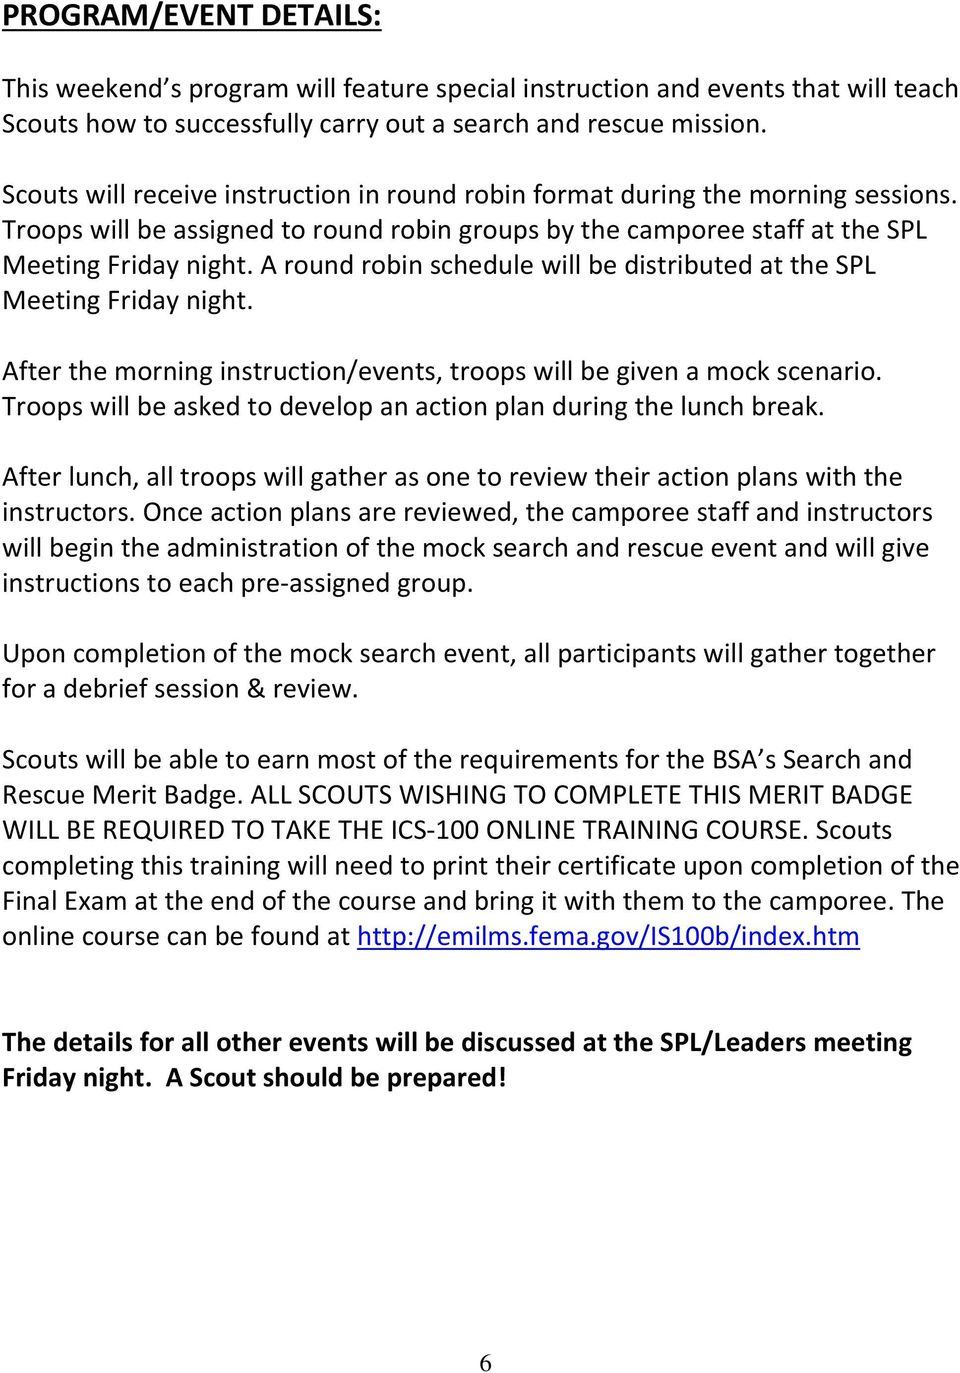 A round robin schedule will be distributed at the SPL Meeting Friday night. After the morning instruction/events, troops will be given a mock scenario.